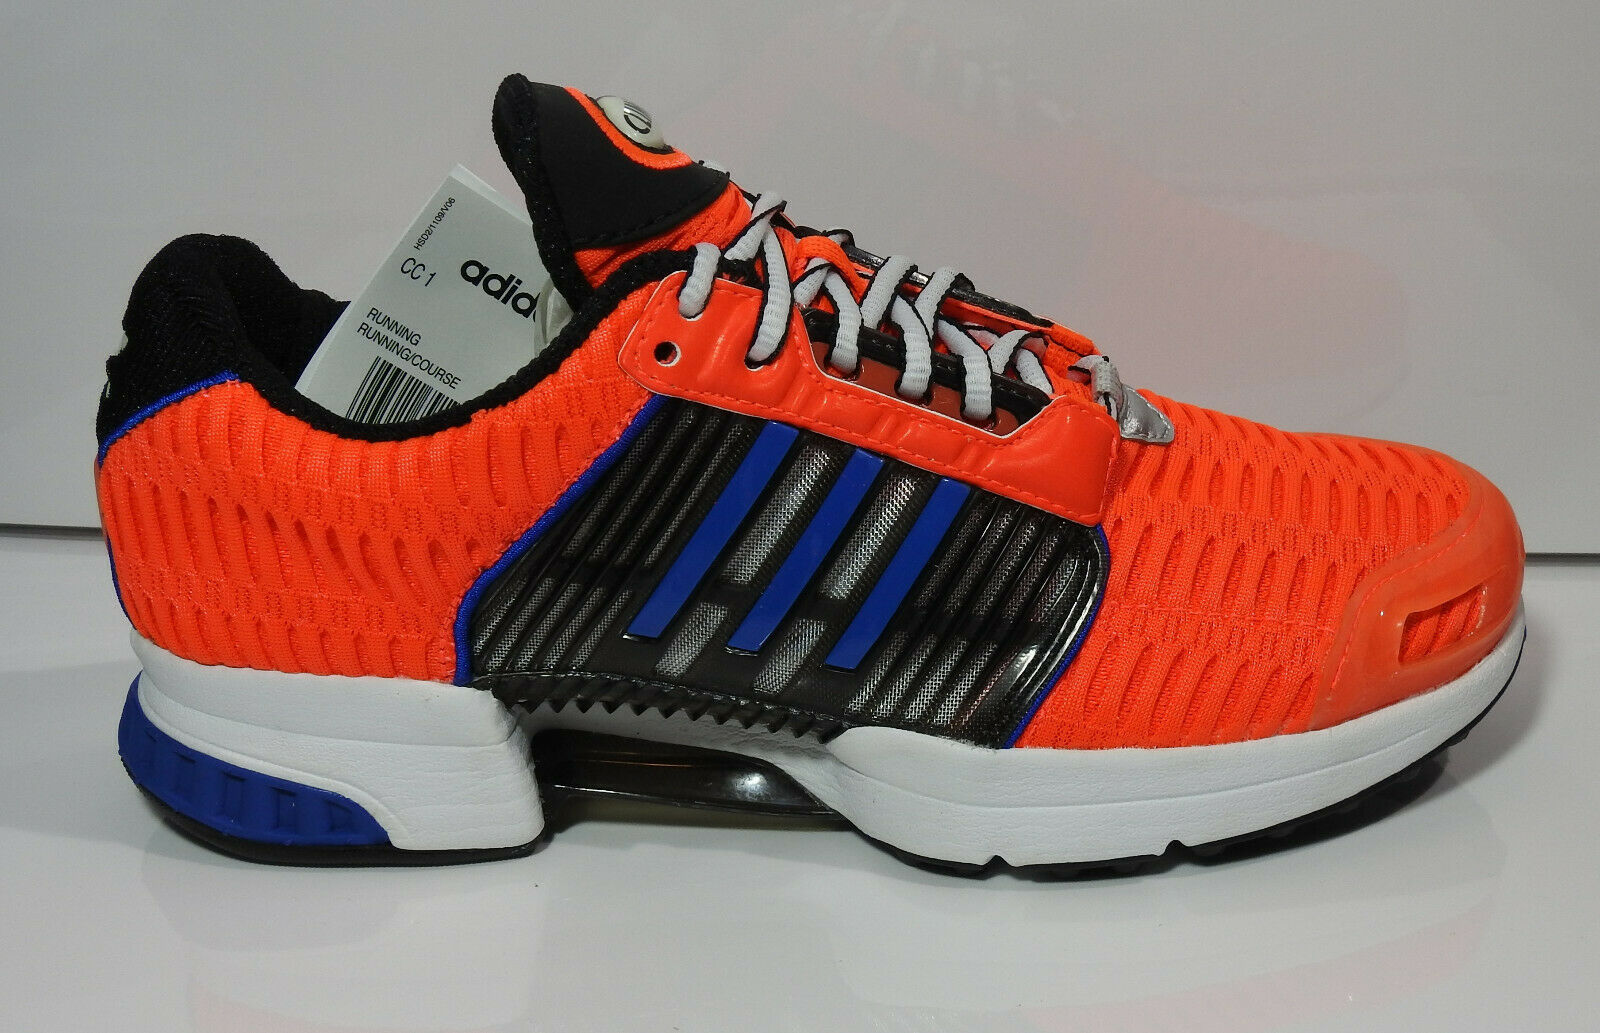 Adidas Climacool 1 One - G97370